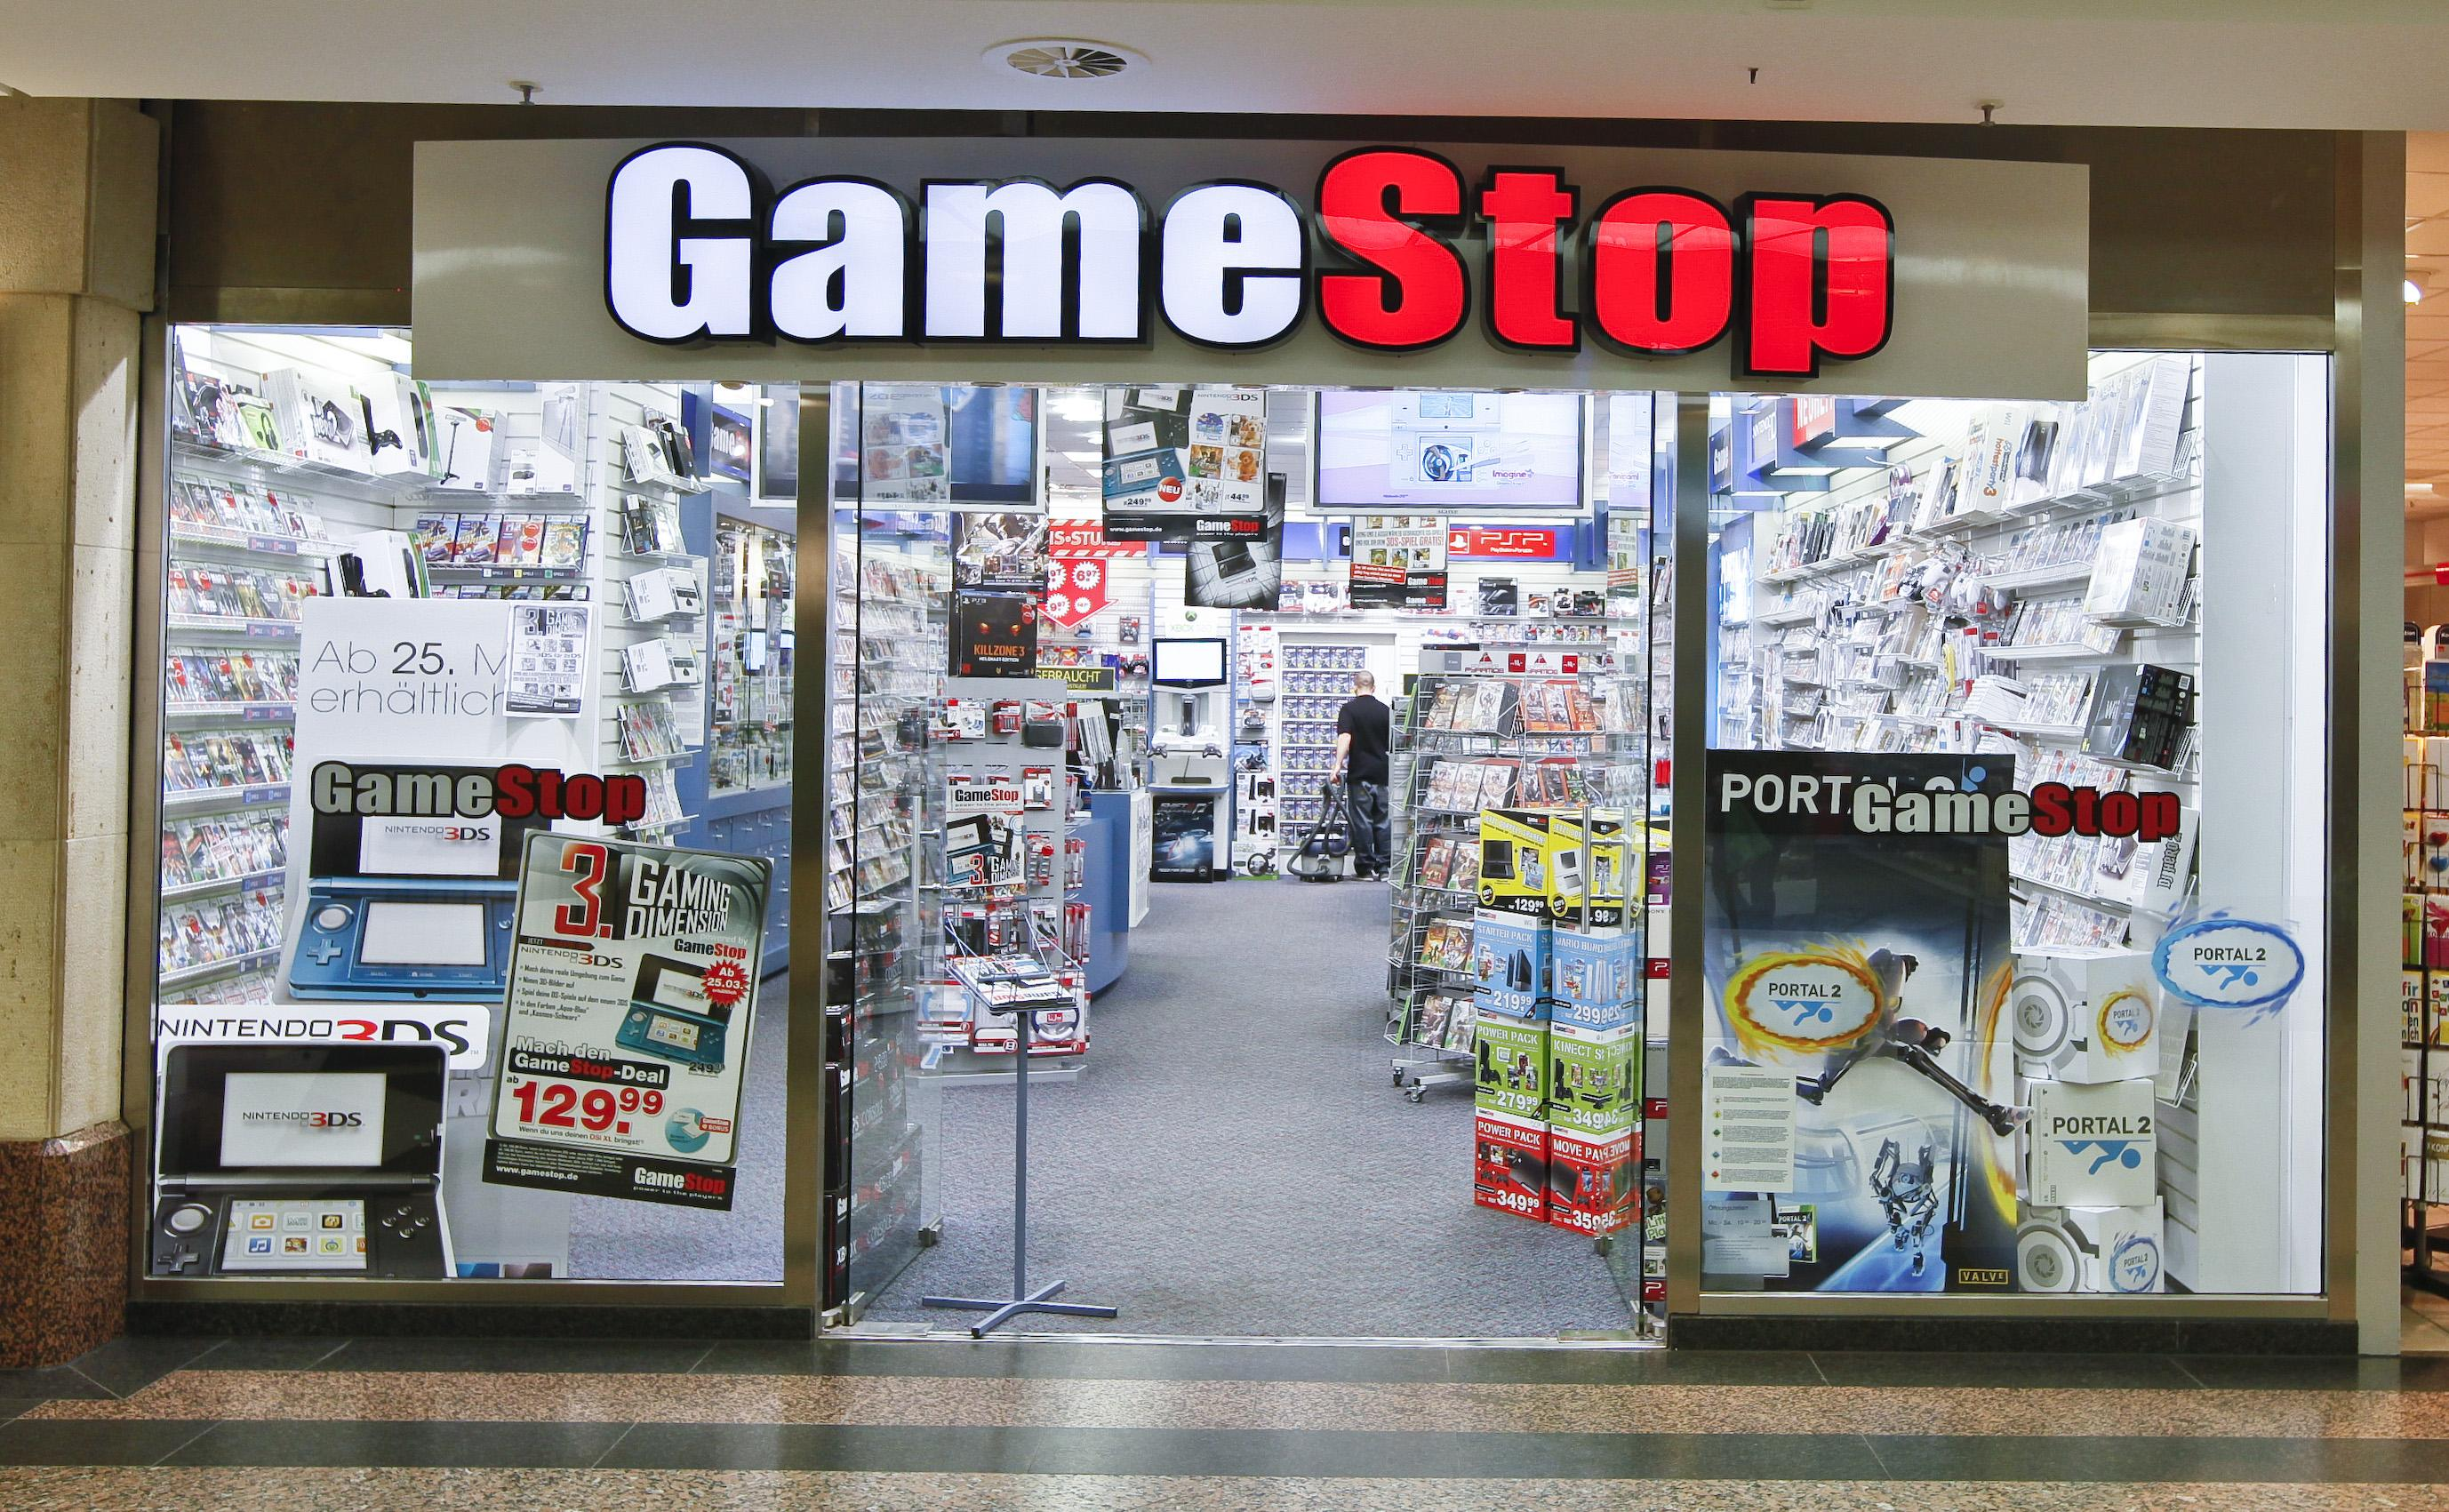 GameStop has strict regular hours of operation. On Monday thru Saturday, GameStop is open from AM until PM.